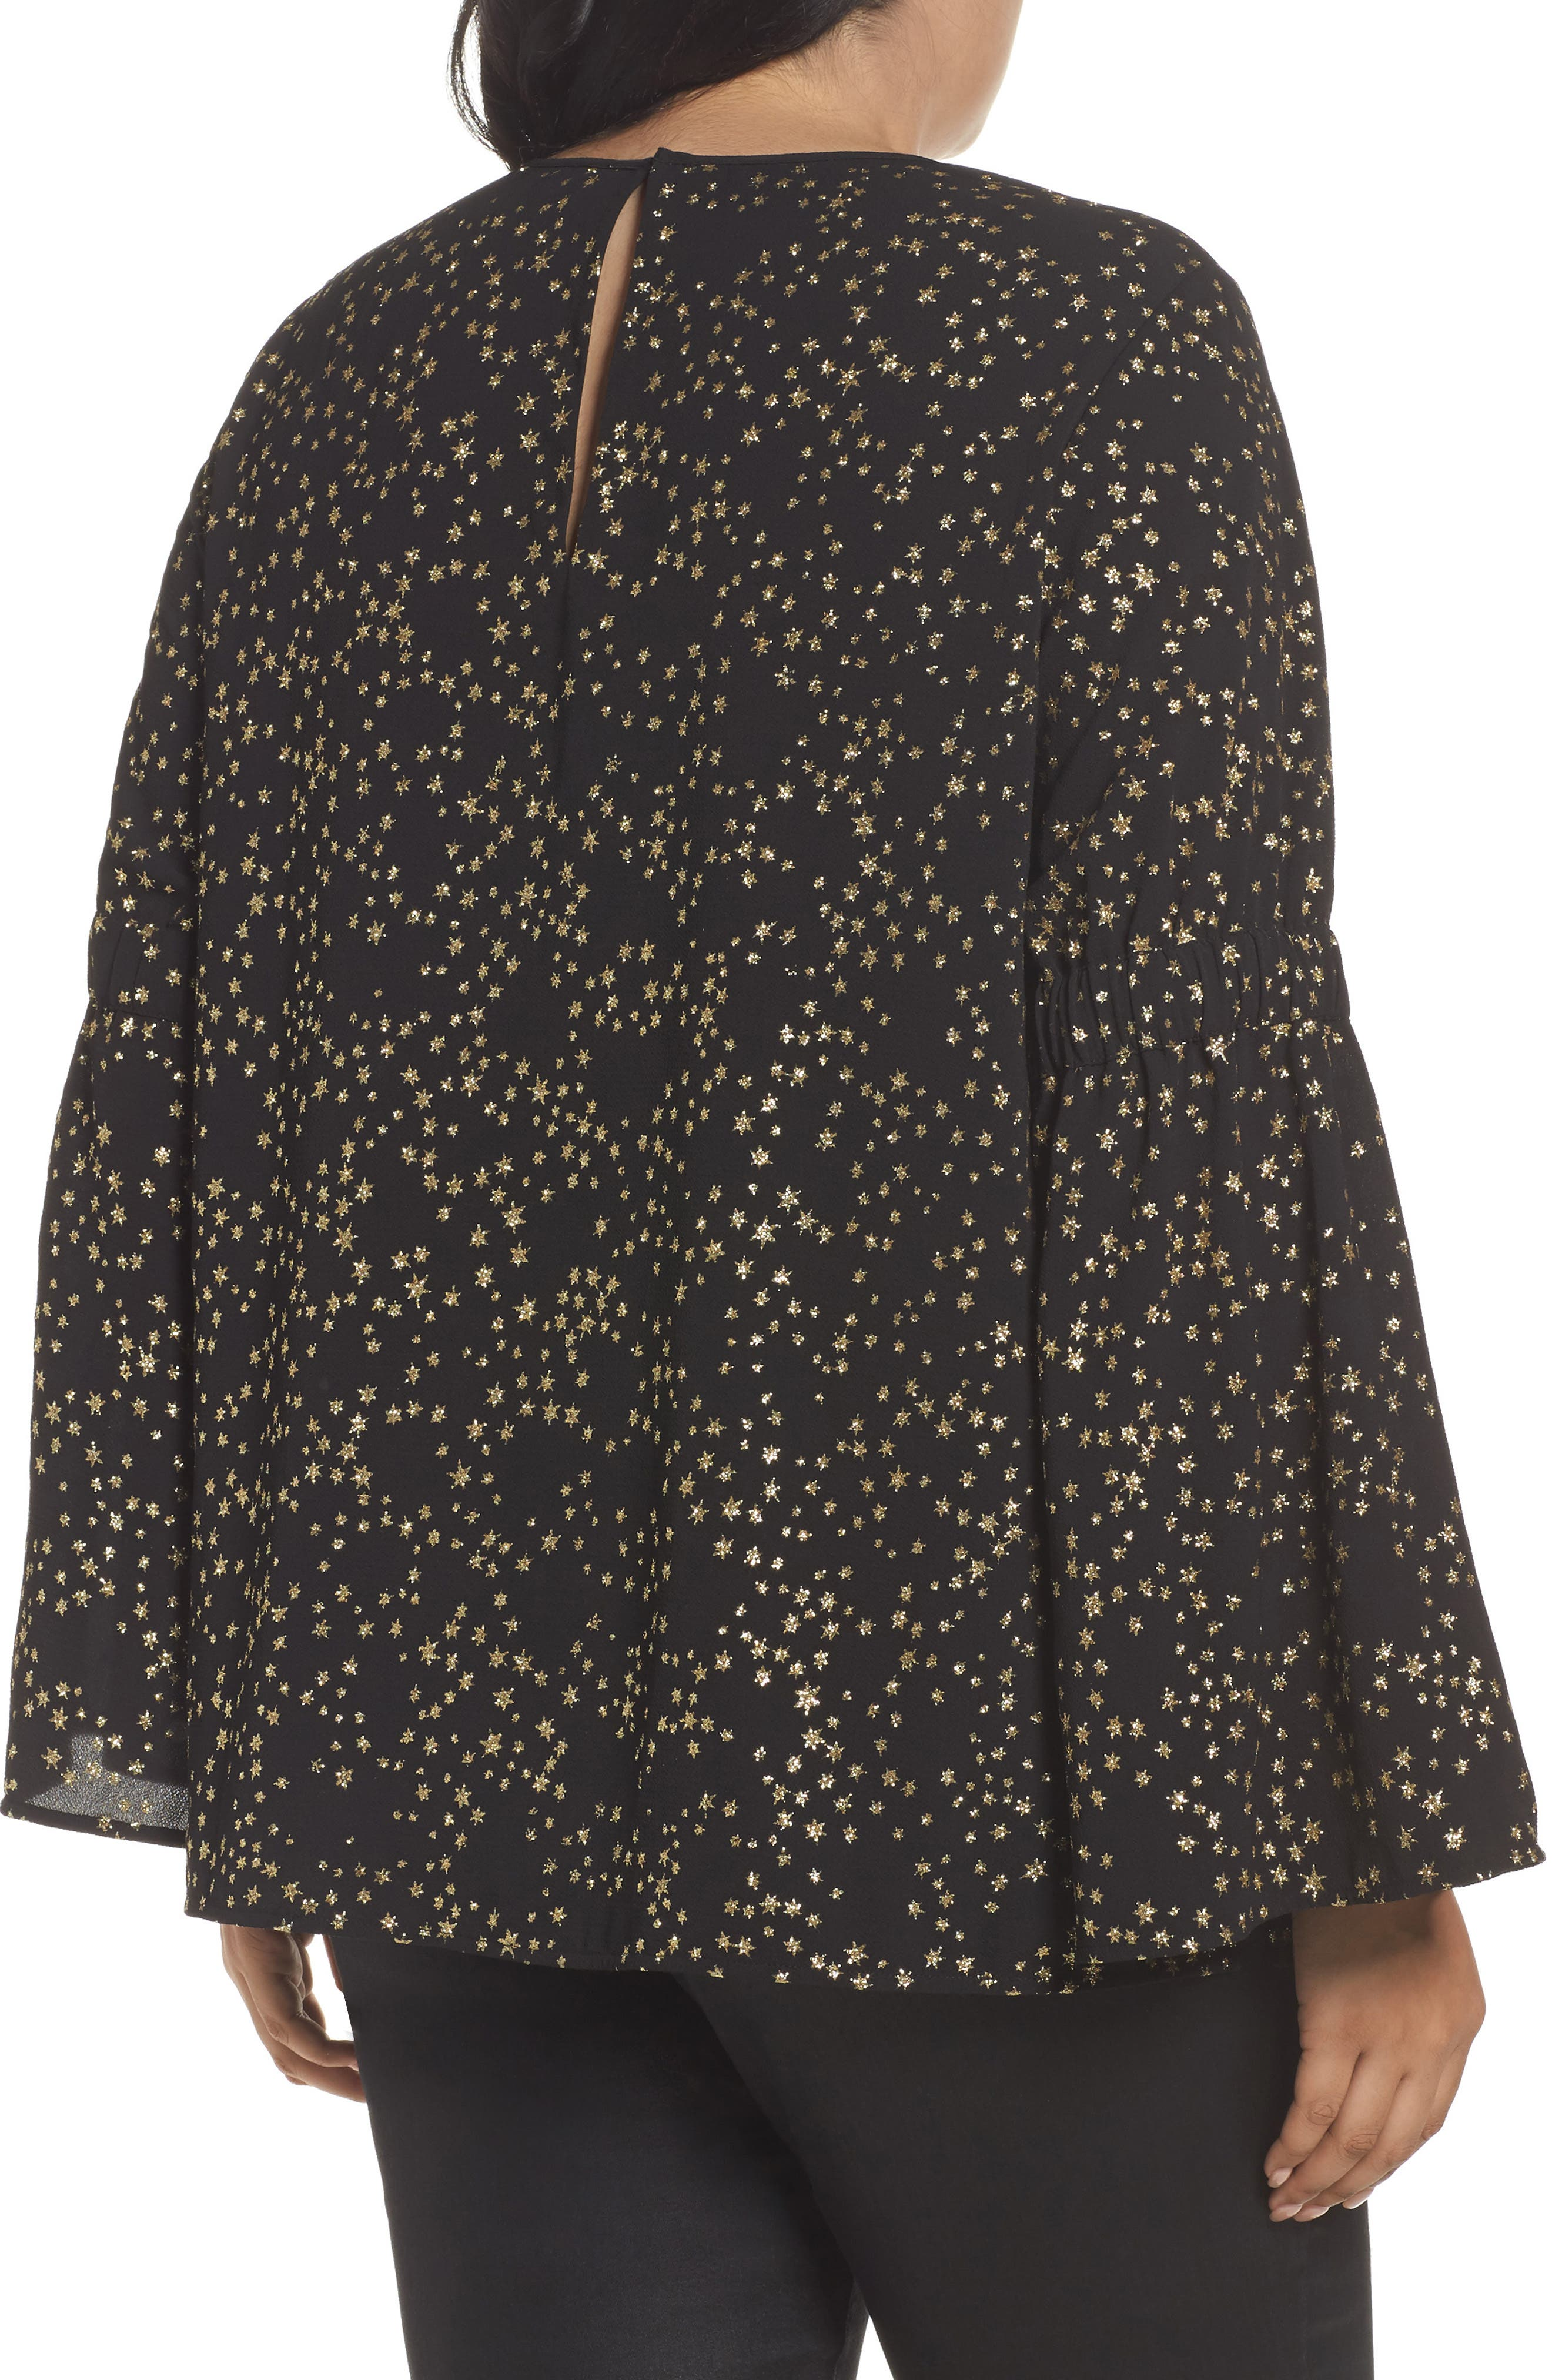 Alternate Image 2  - MICHAEL Michael Kors Shooting Star Bell Sleeve Top (Plus Size)